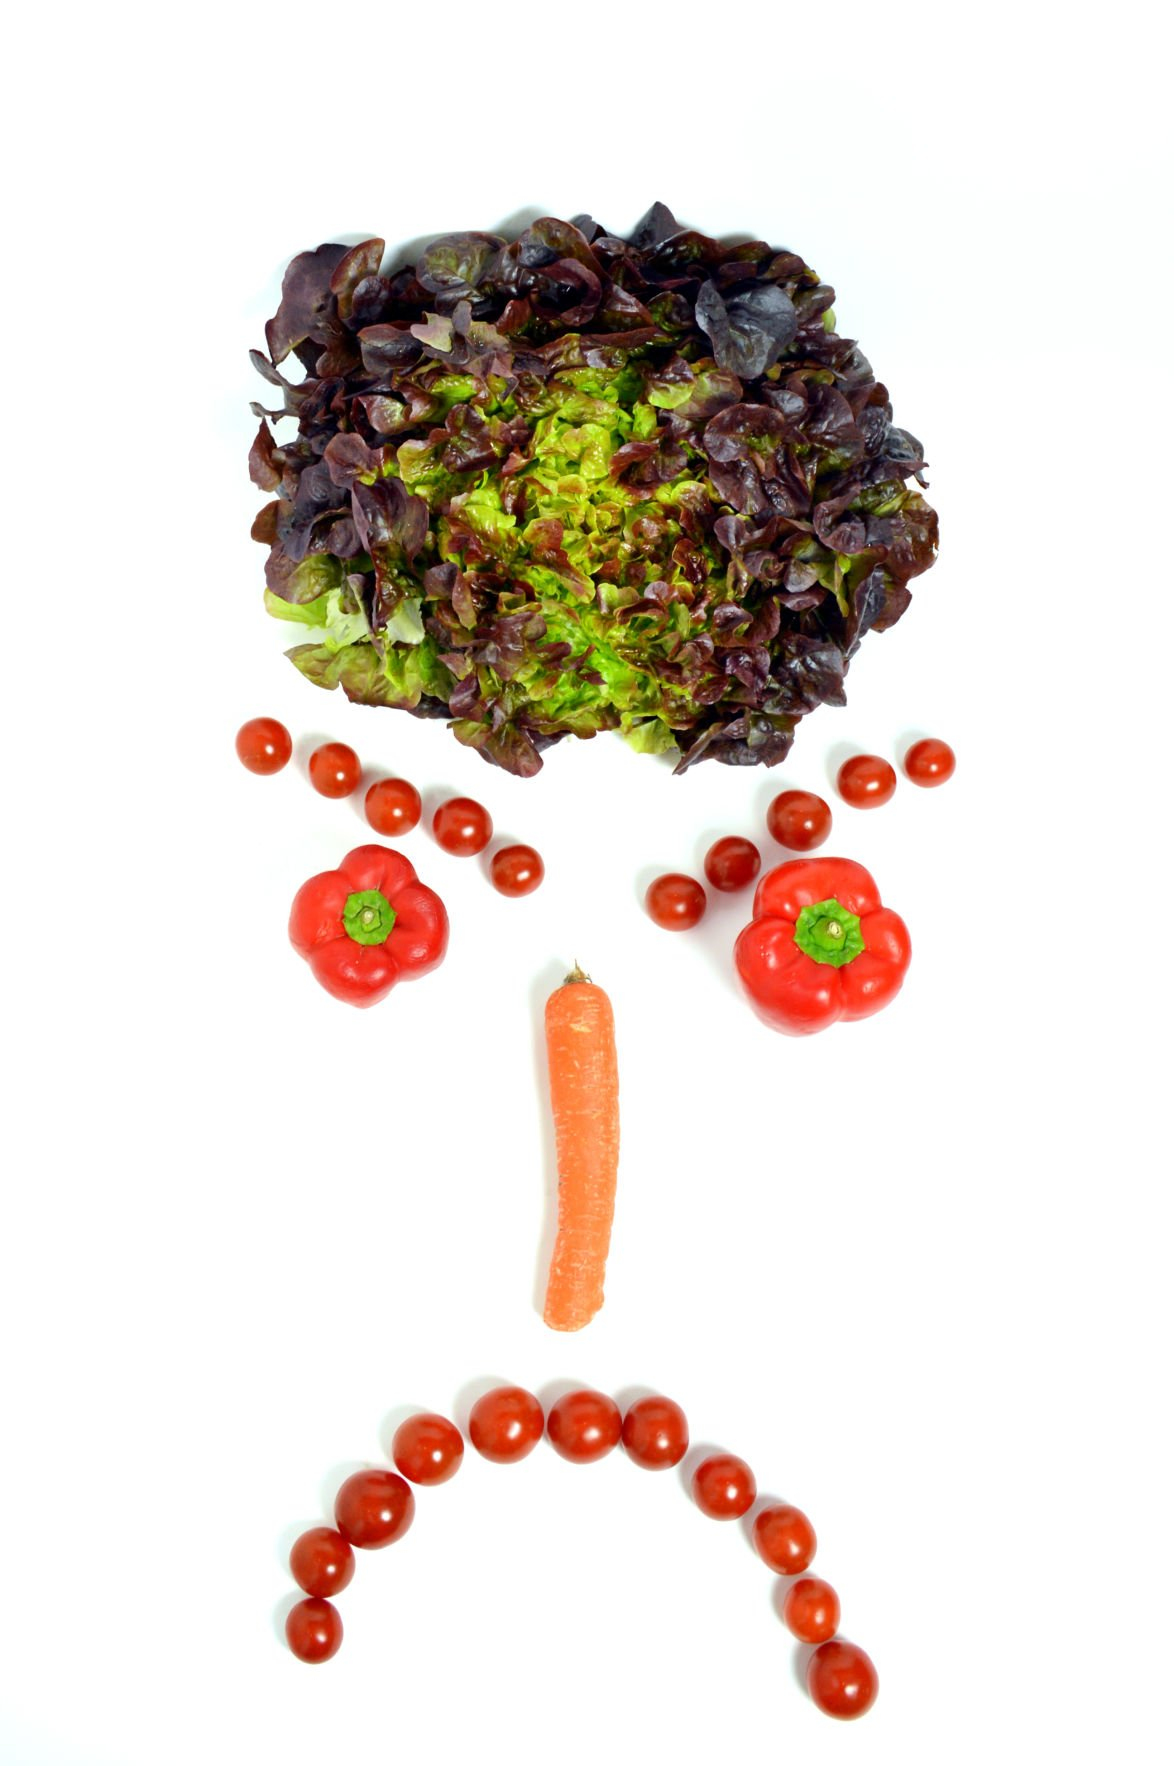 Angry smiley face, with vegetables